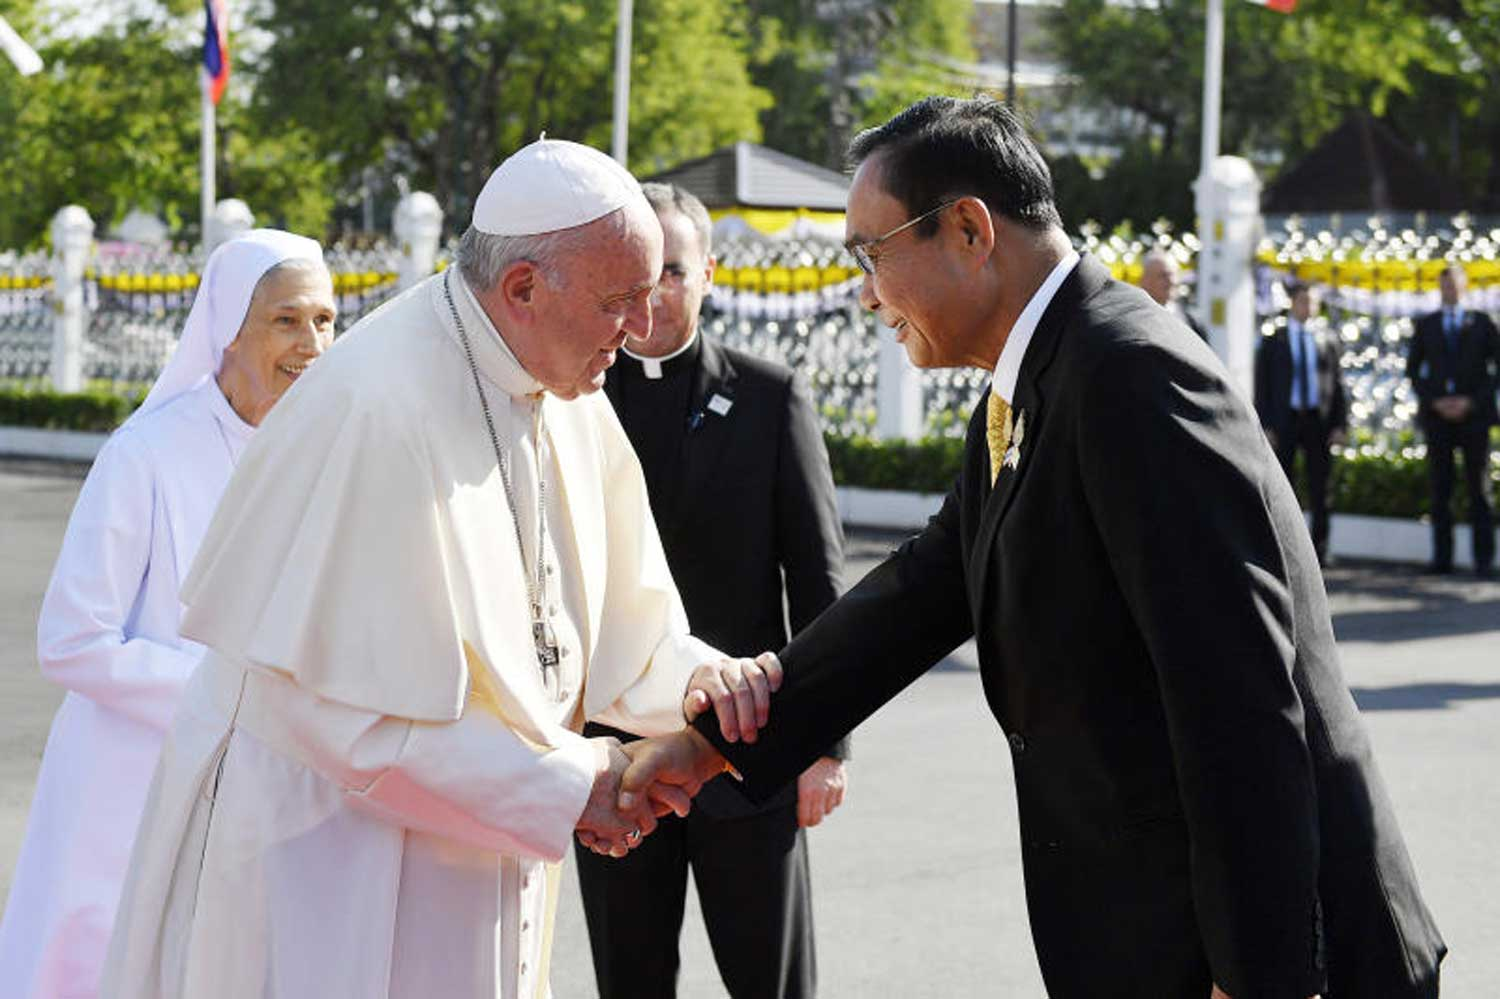 Pope Francis is greeted by Prime Minister Prayut Chan-o-cha at Government House in Bangkok on Thursday morning. (Government House photo)